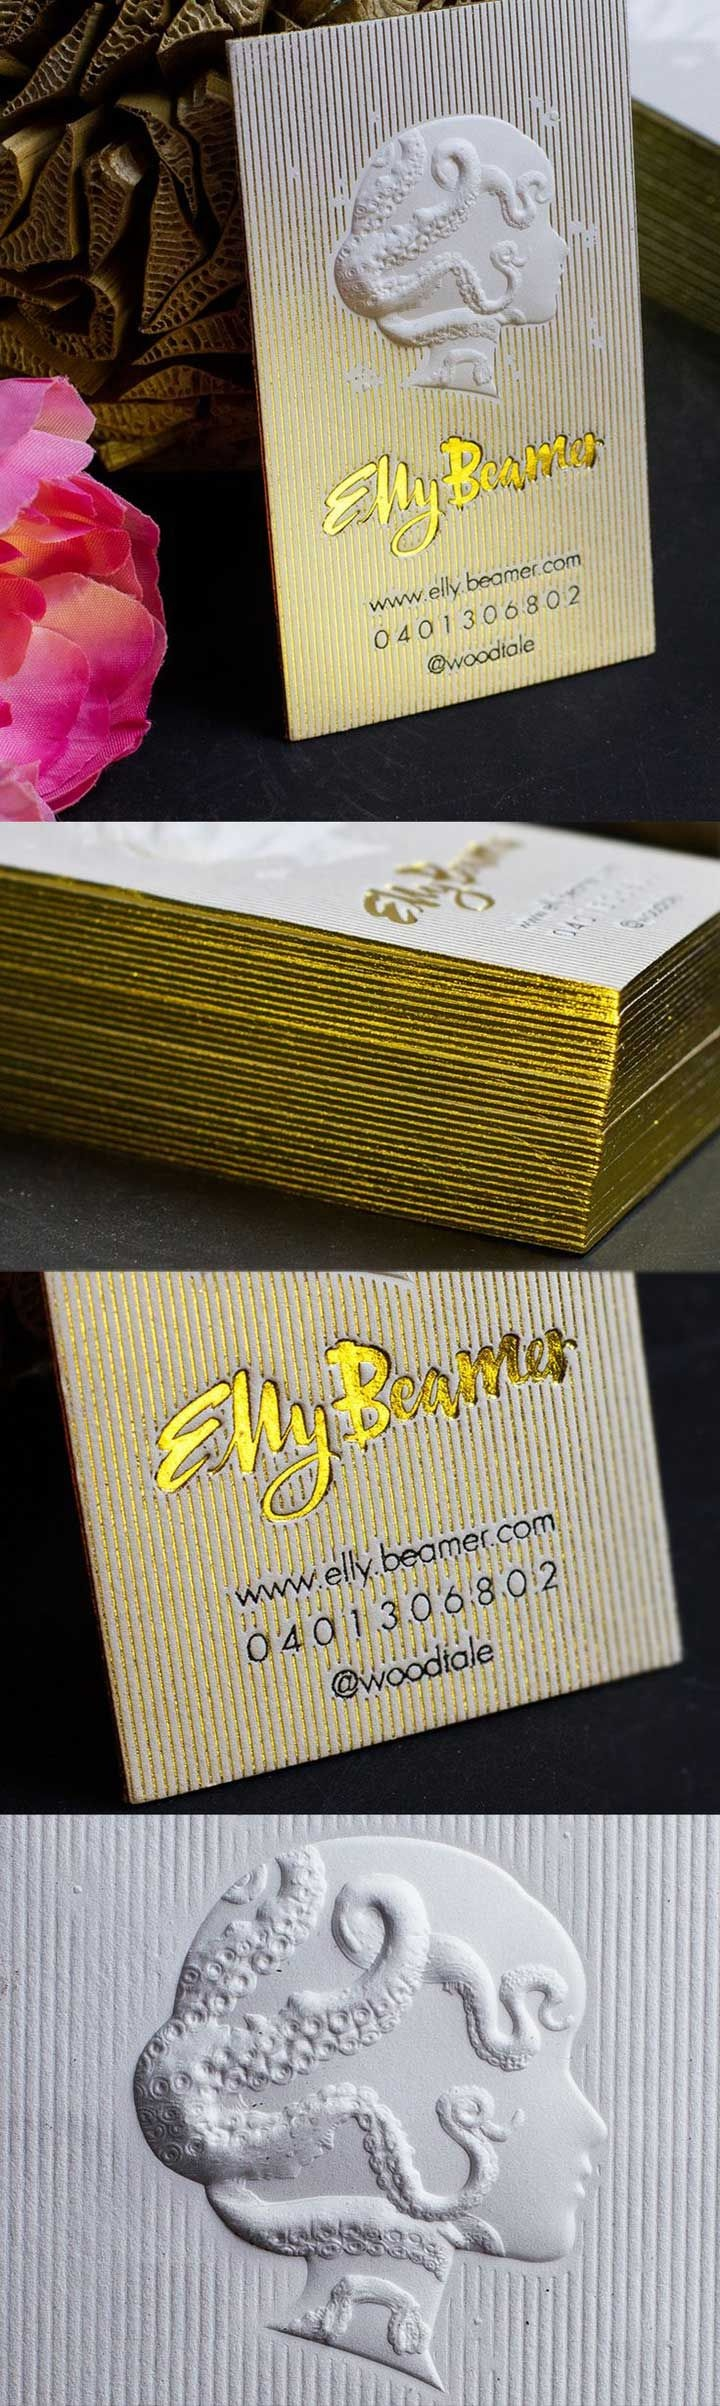 elly beamer business card